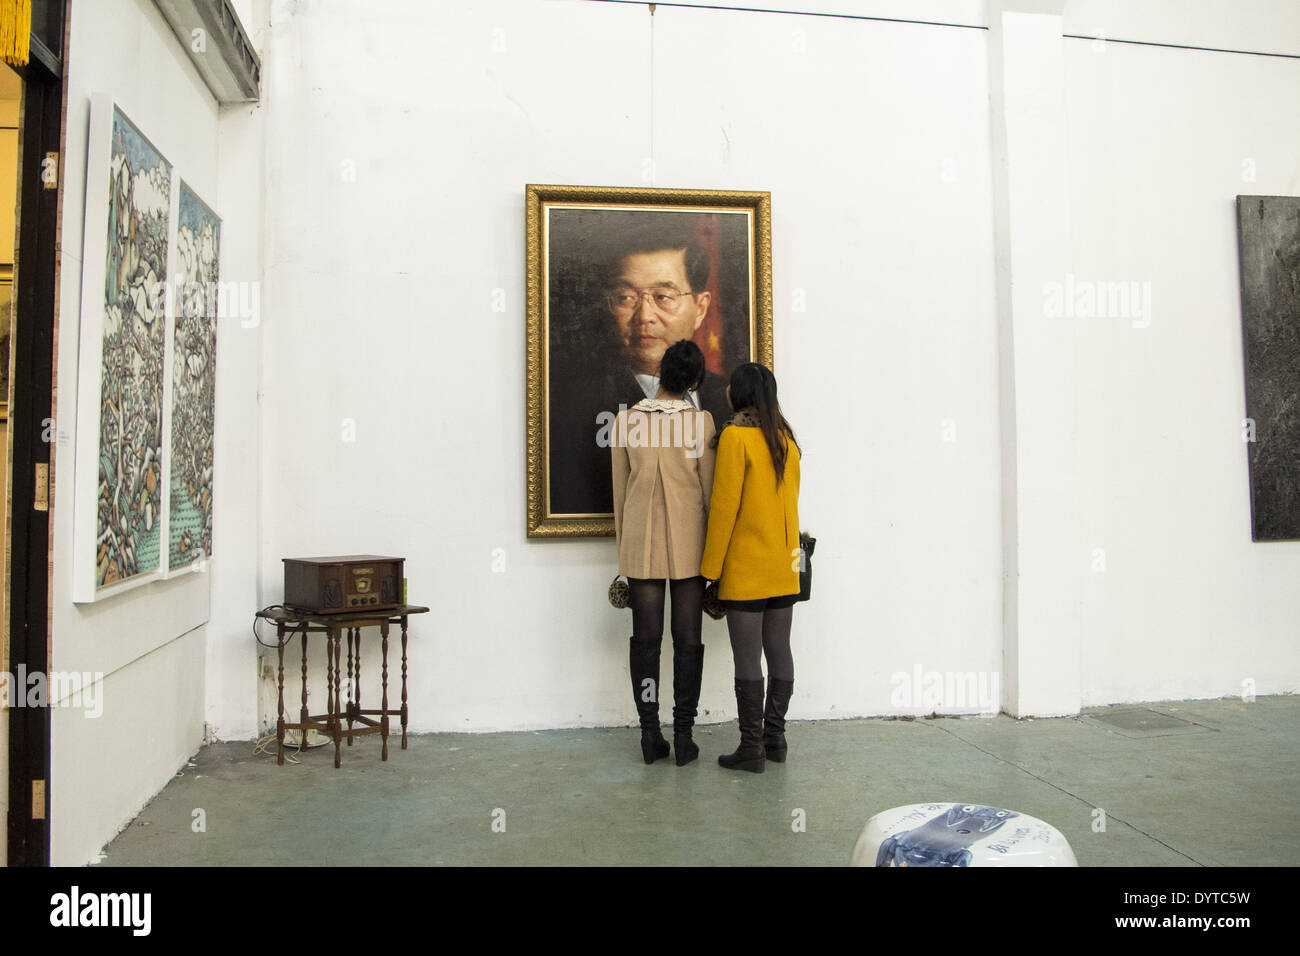 Two spectators look closely a painting of ex-President Hu Jintao in a gallery in Shanghai - Stock Image